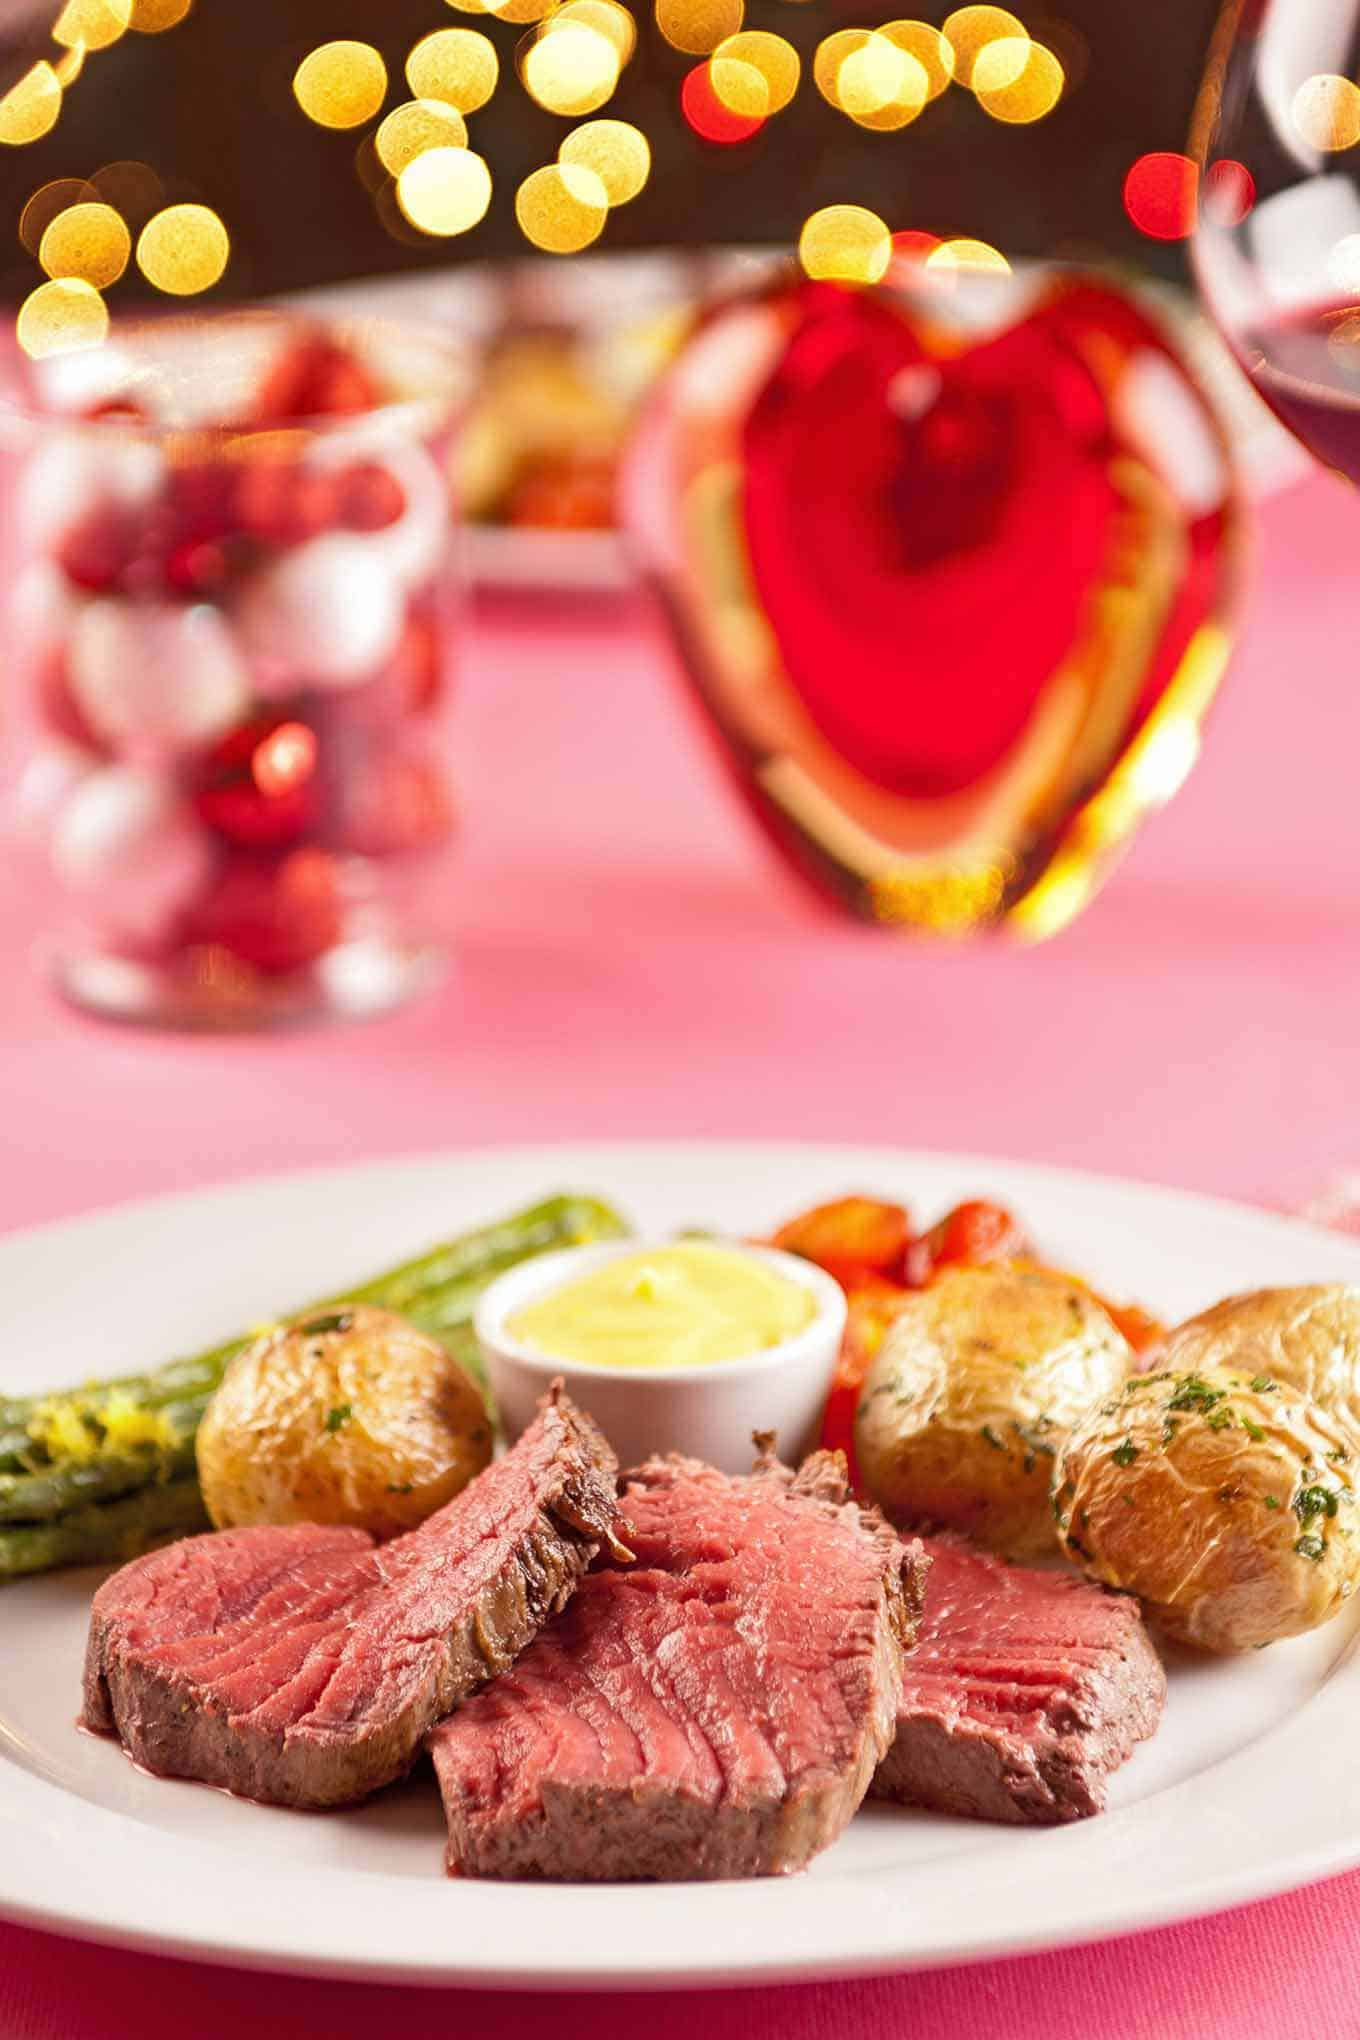 Valentine's Dinner Chateaubriand For Two with Decorations and Lights